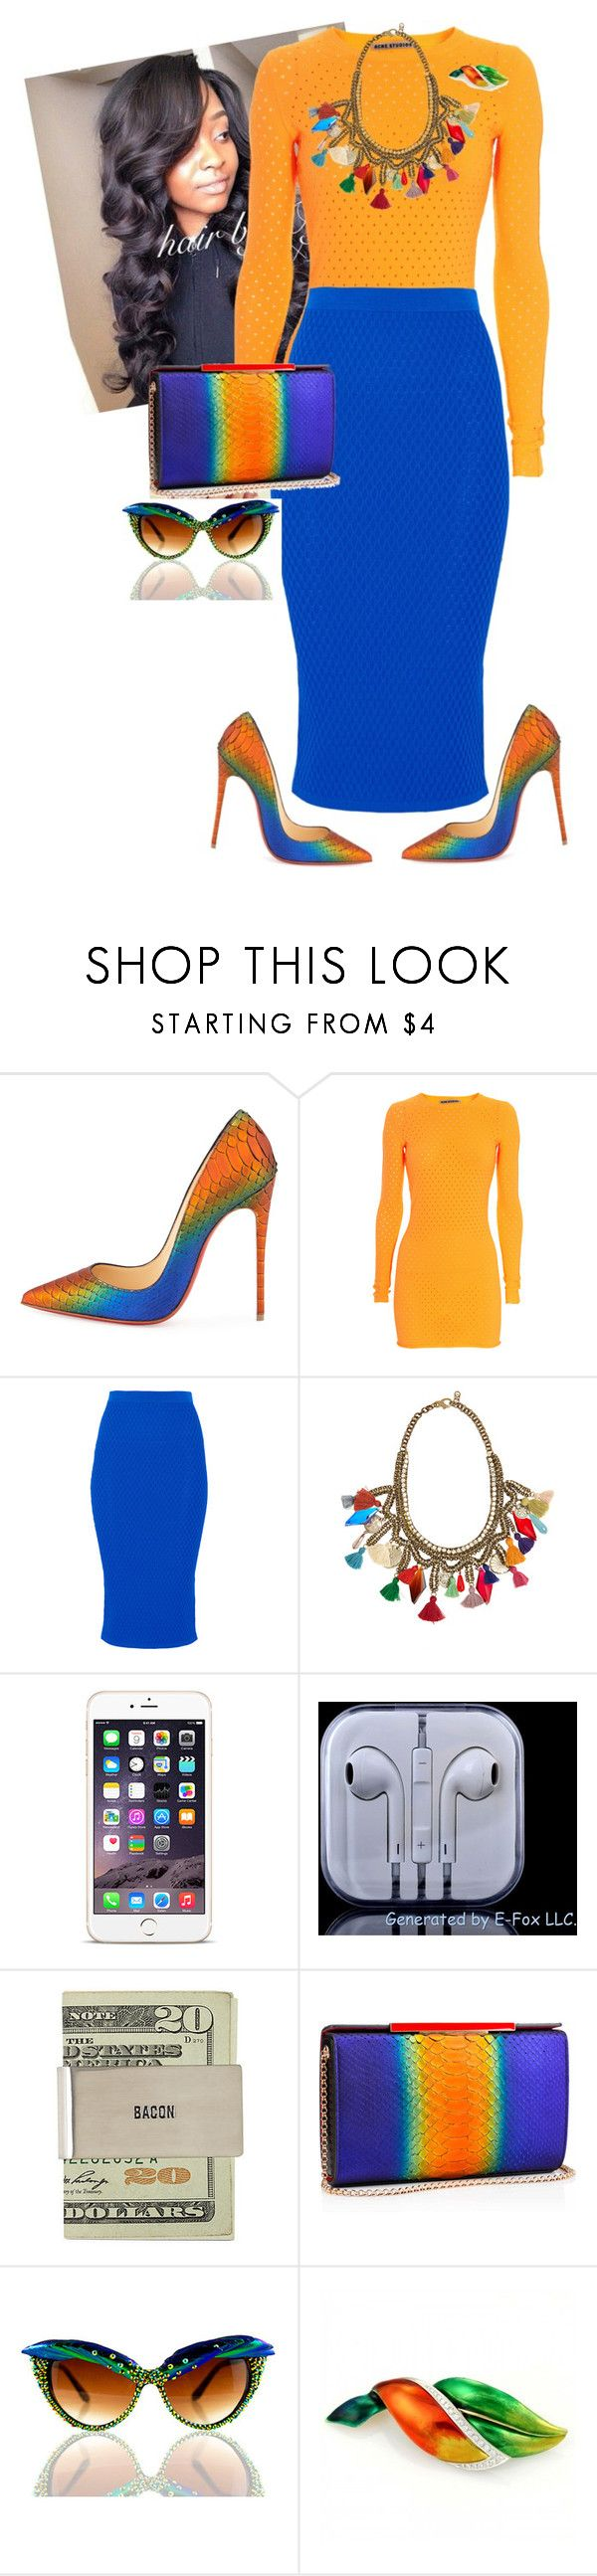 """Church Time"" by cogic-fashion ❤ liked on Polyvore featuring Christian Louboutin, Acne Studios, Jonathan Simkhai, Sveva, MATERIAL MEMORIE and Tiffany & Co."